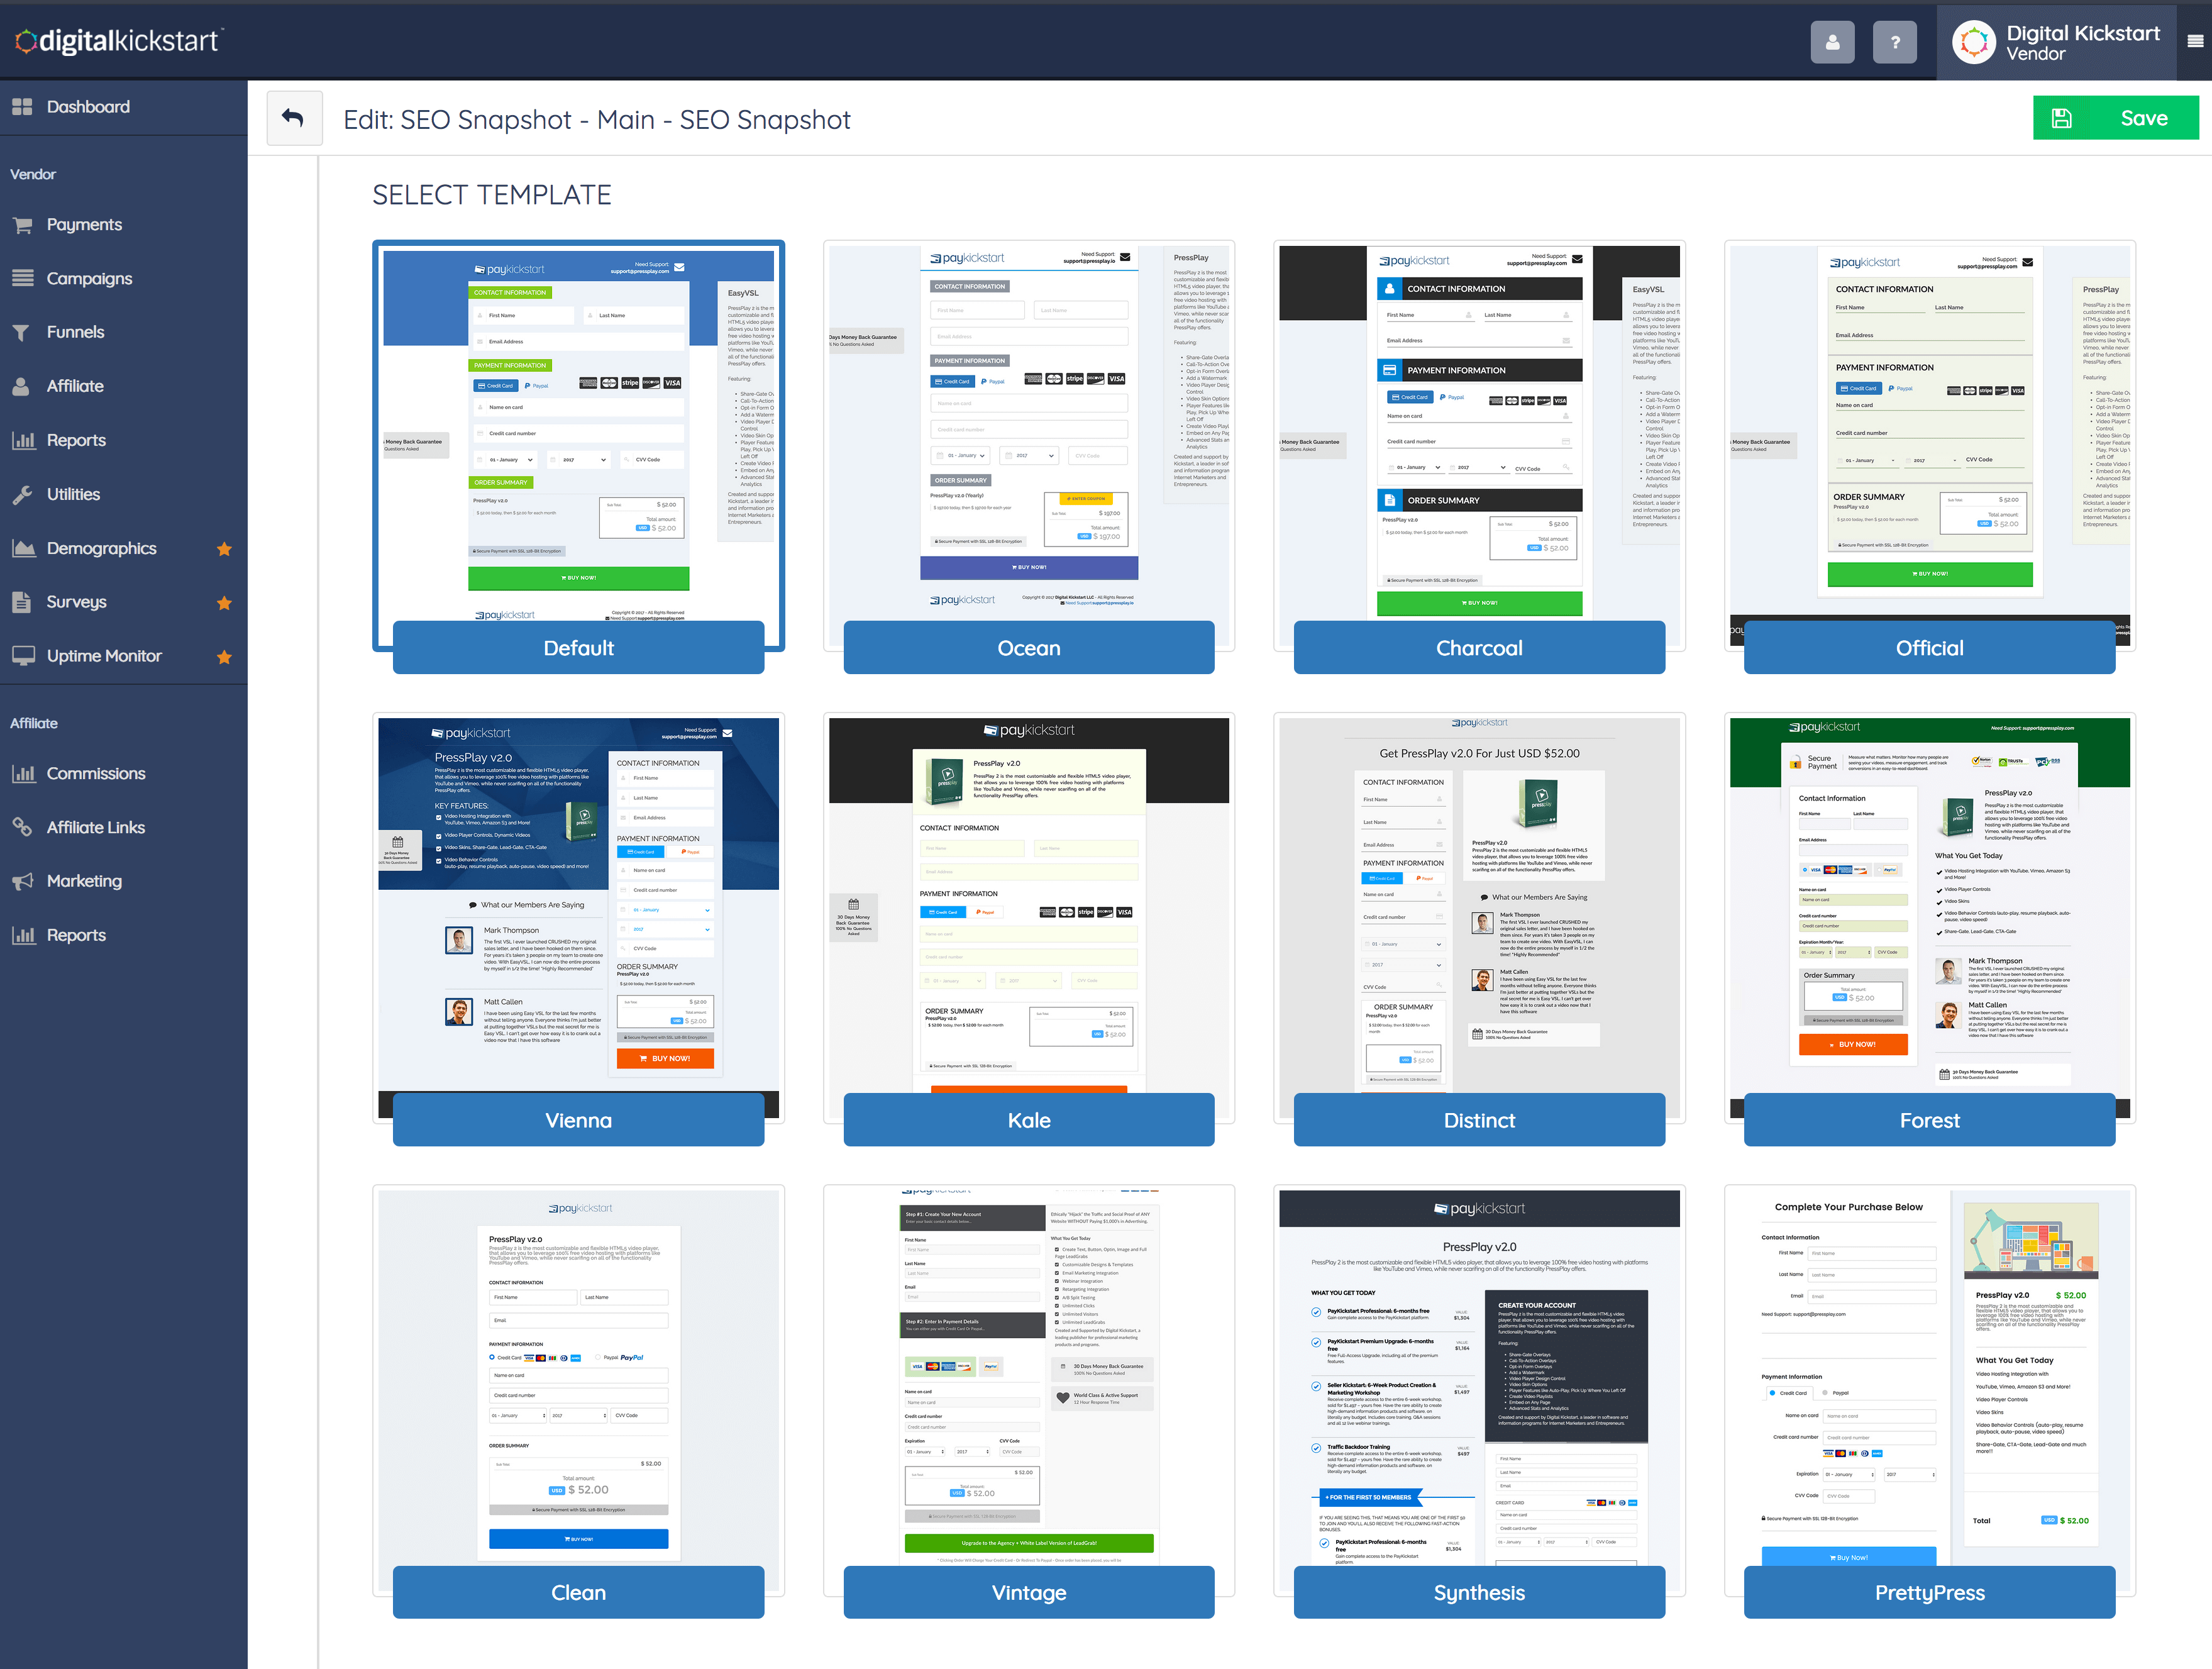 8 New Beautiful Checkout Templates to Help Your Products Sell!